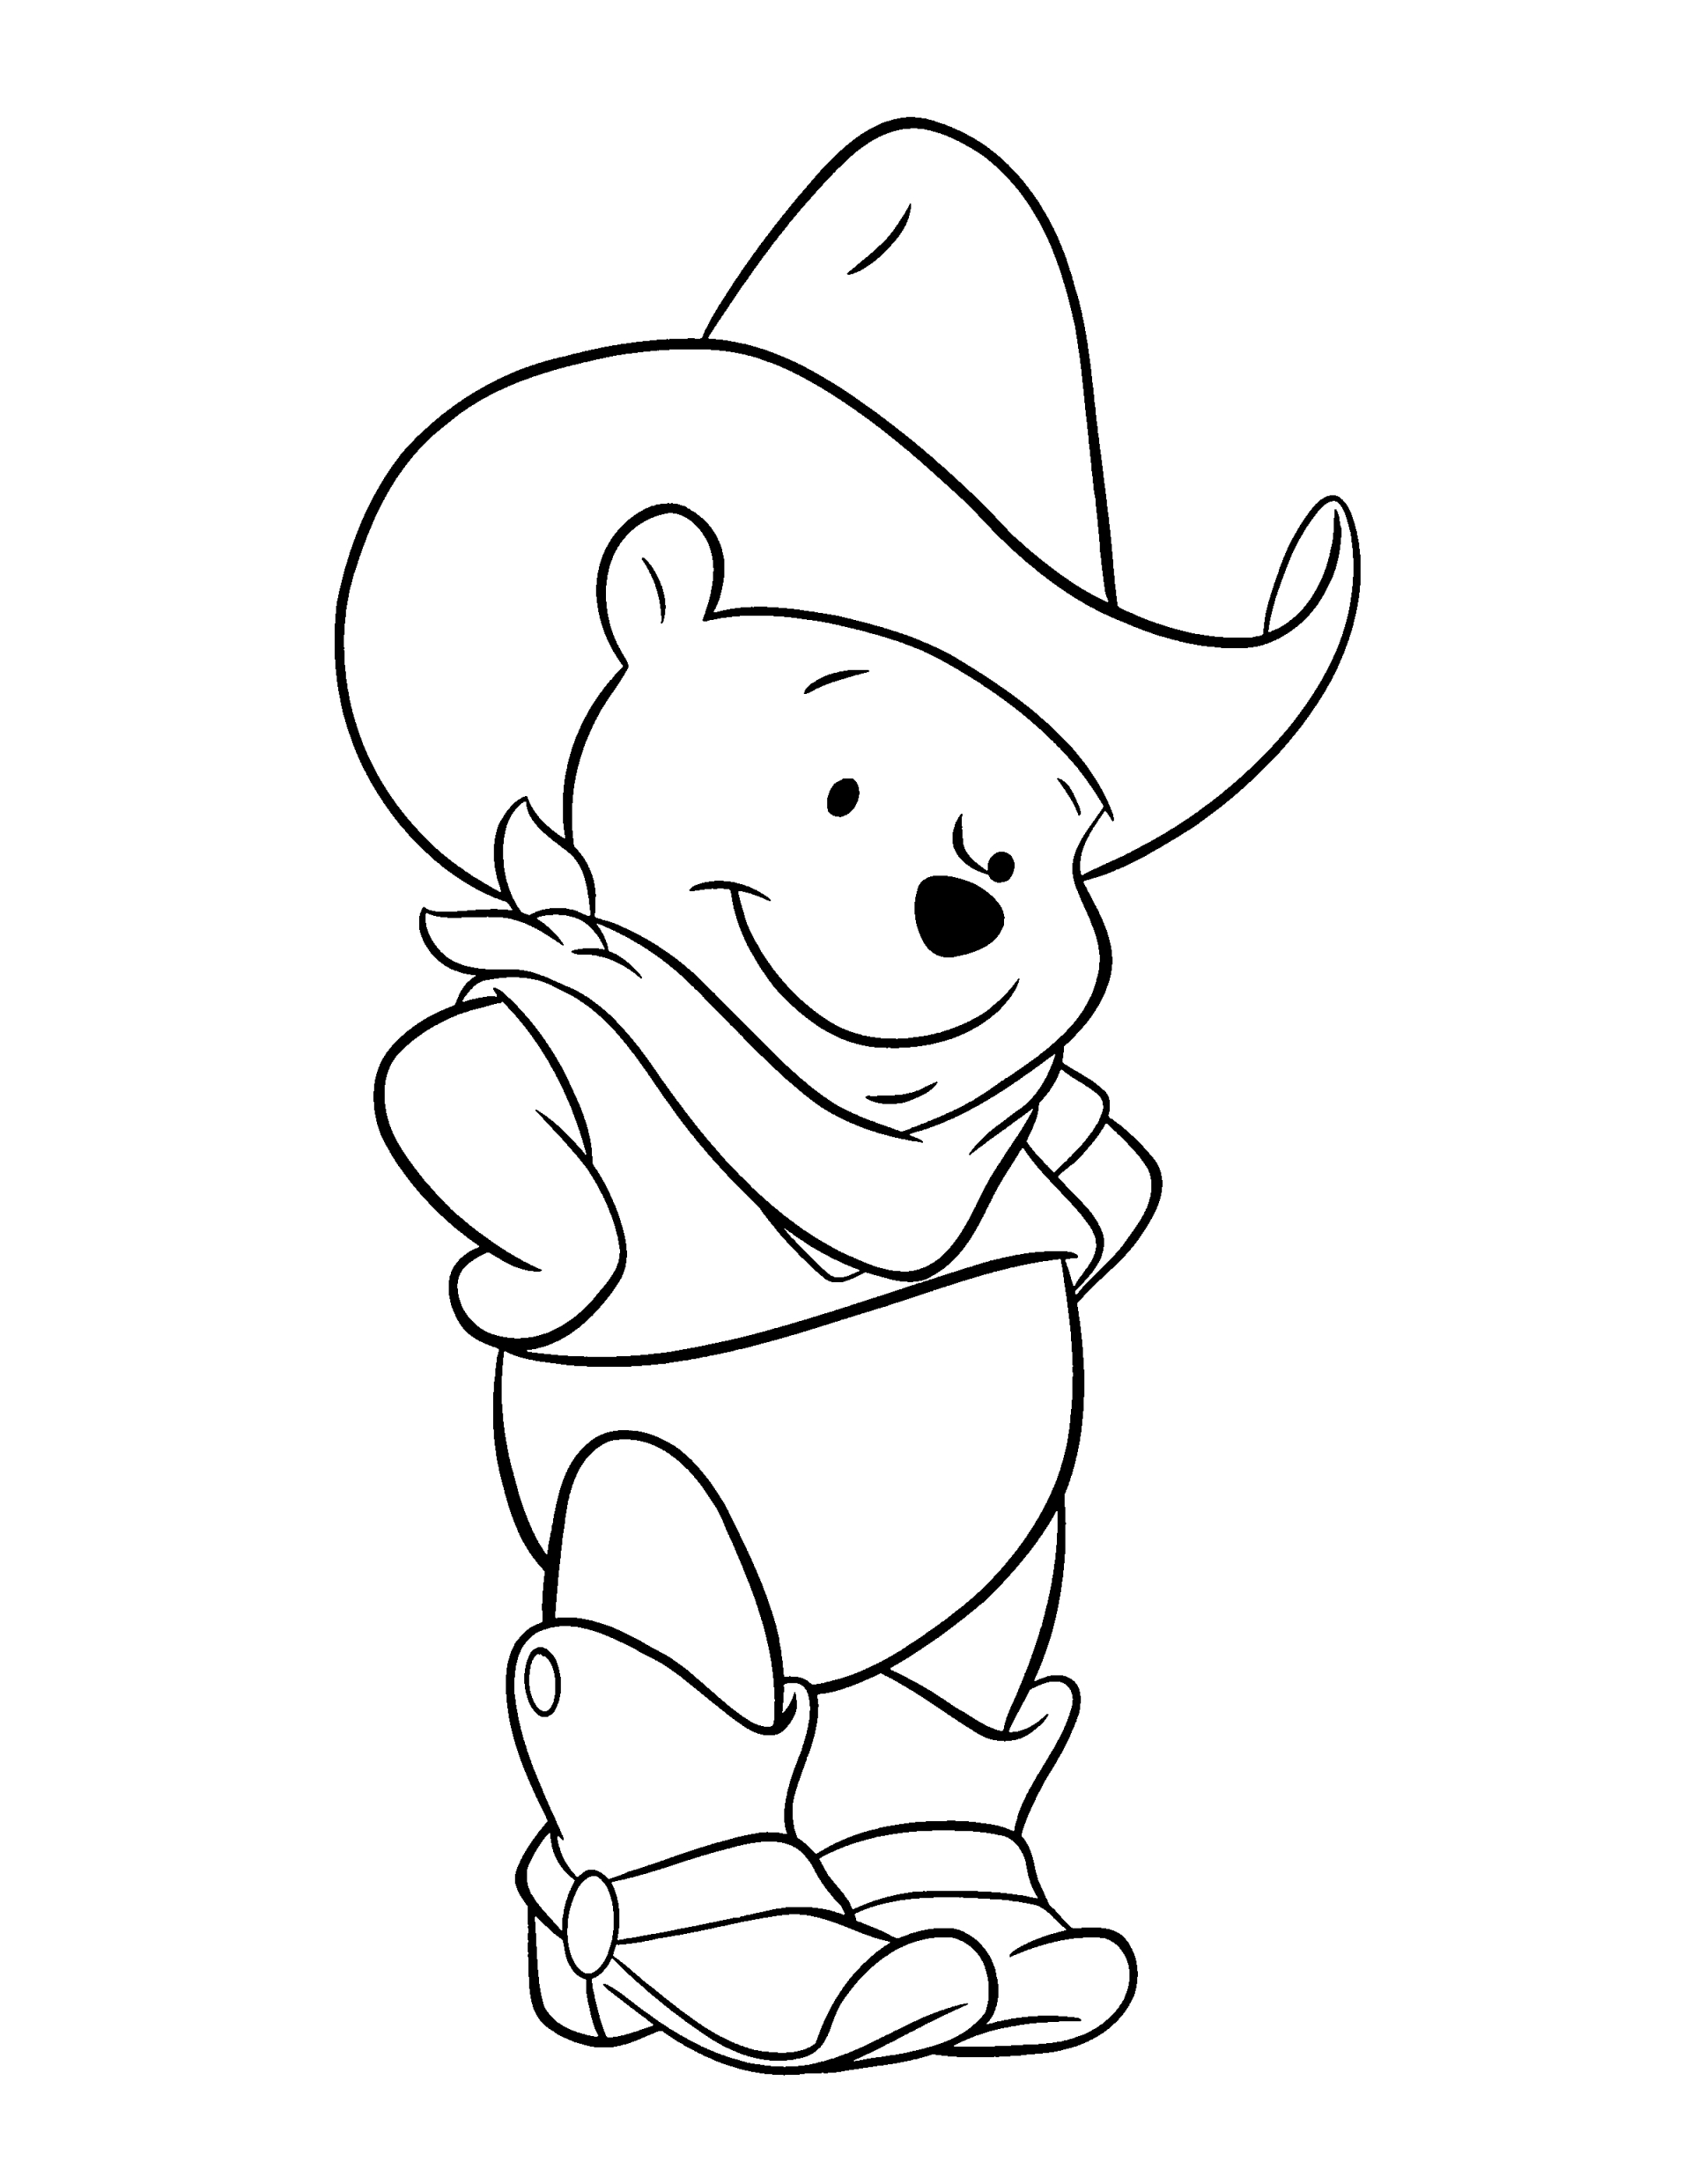 1920x2480 Cartoon Character Coloring Pages Cute Characters Images Hd